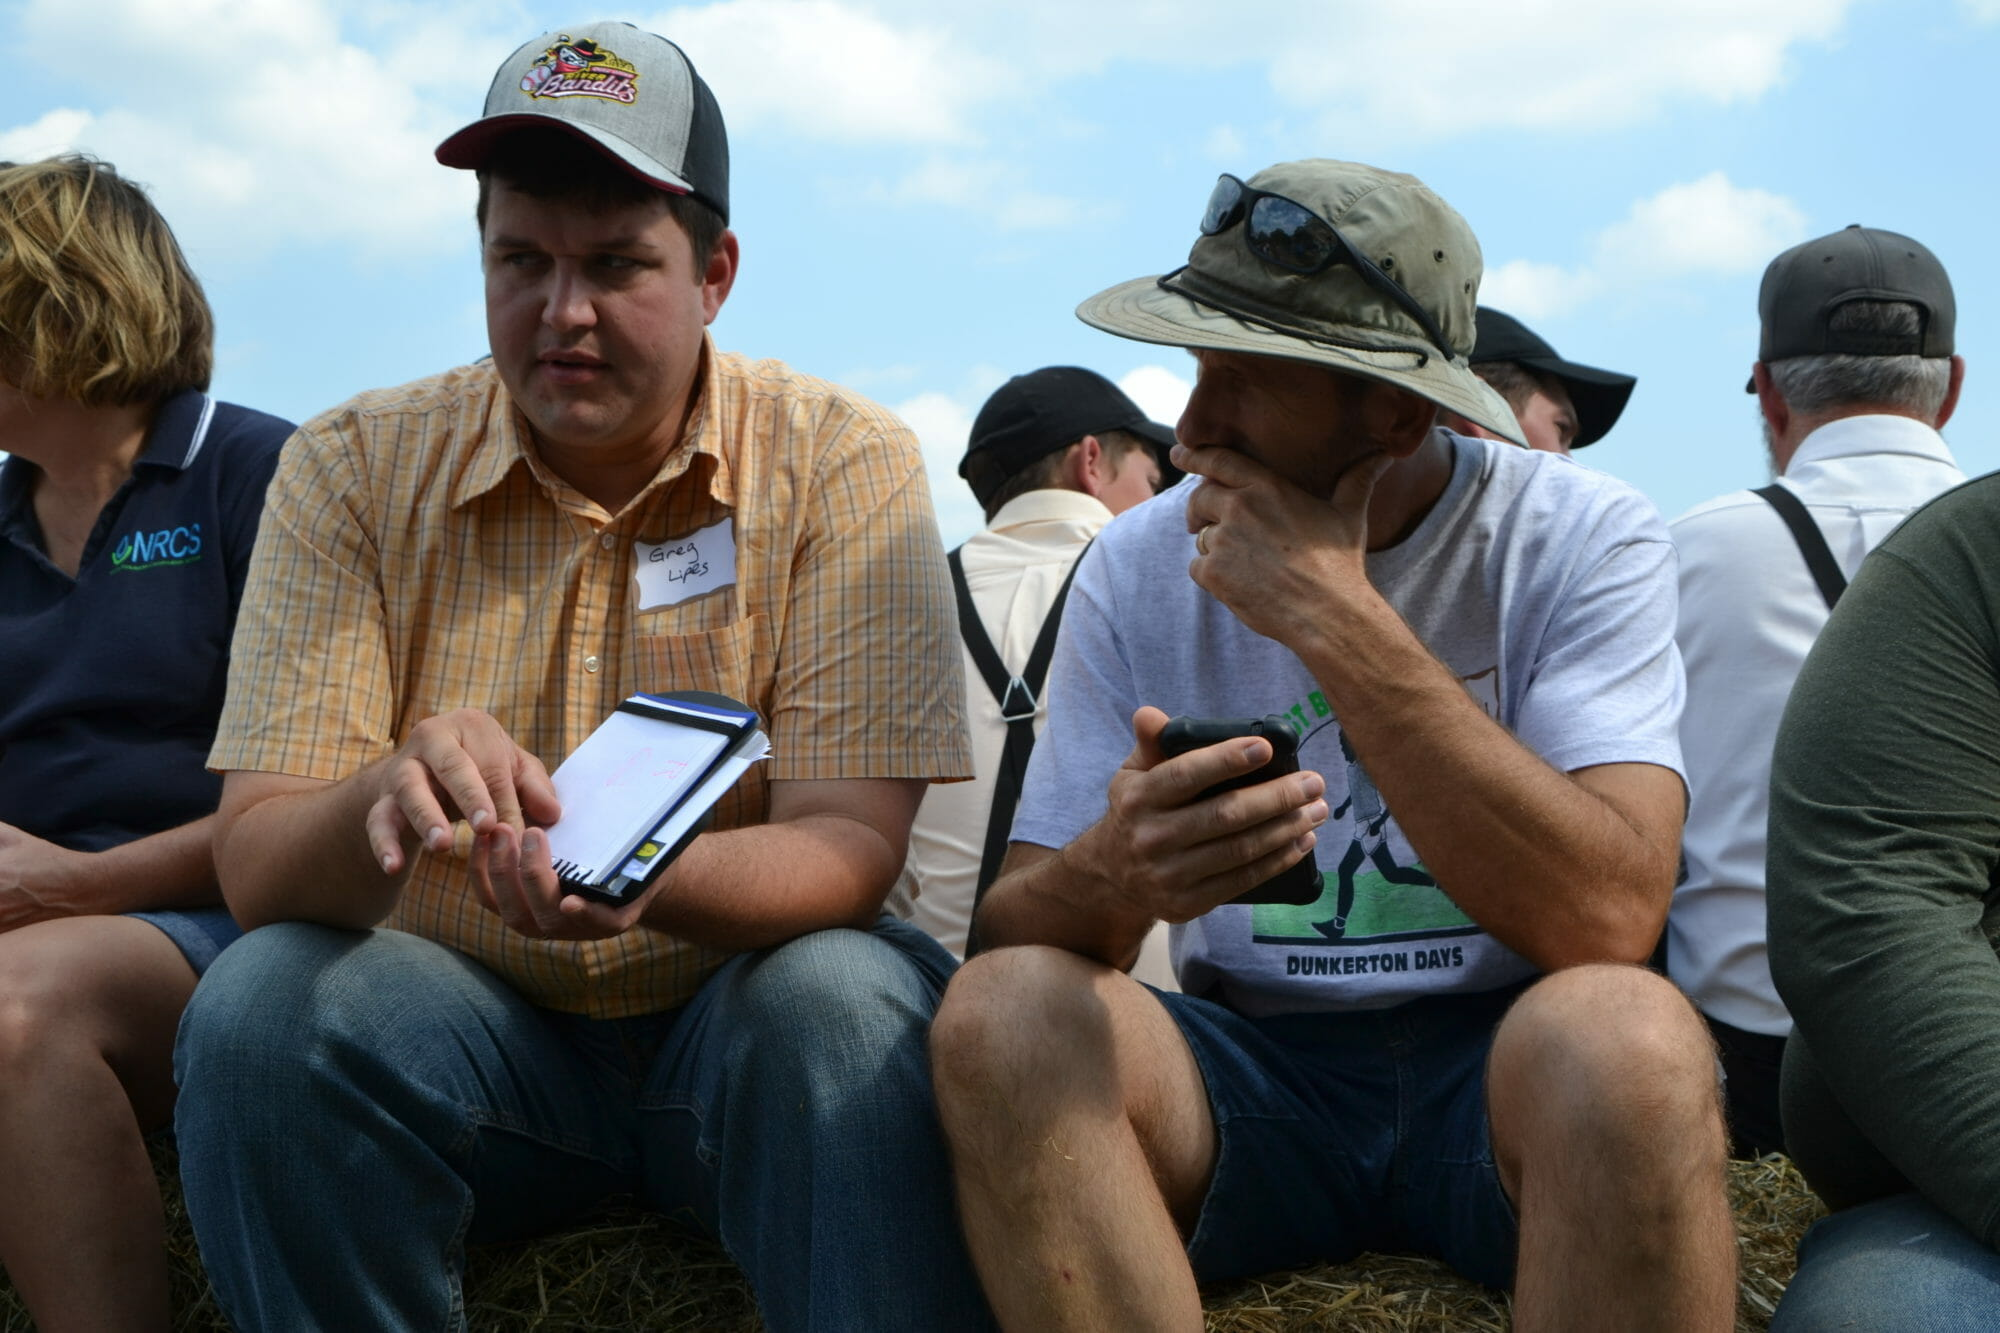 From left: Greg Lipes and Earl Canfield listen to the discussion.